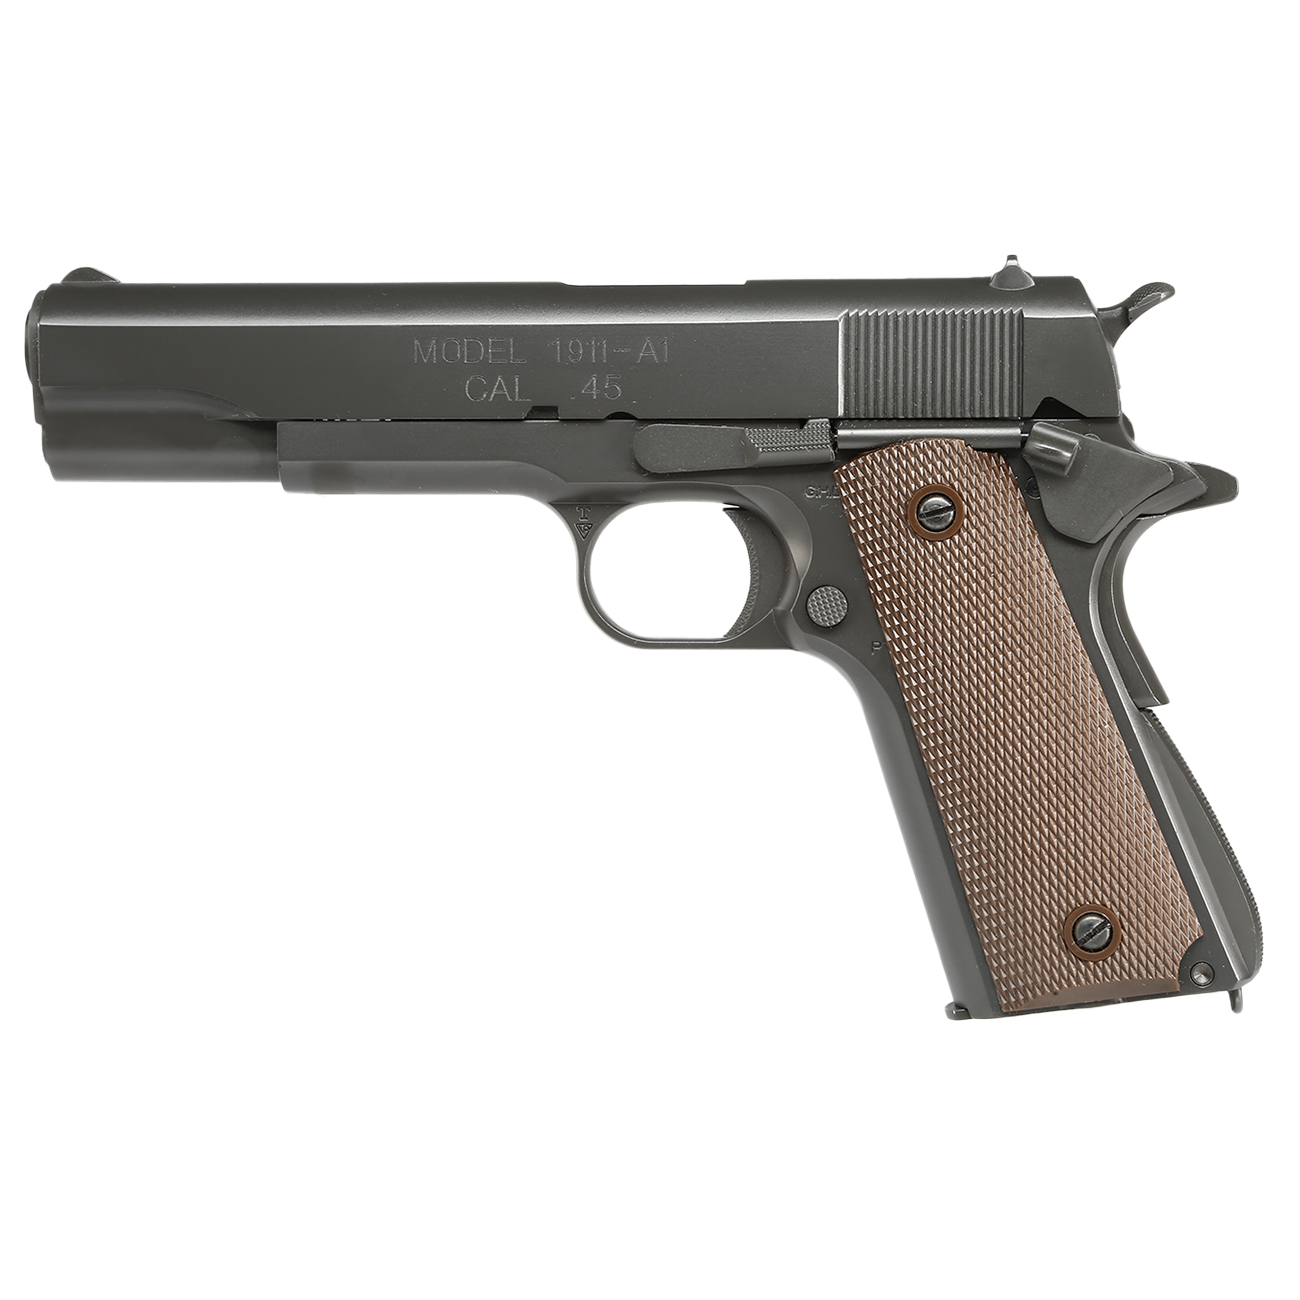 King Arms M1911-A1 Cal. 45 Vollmetall GBB 6mm BB Original-Grey 1